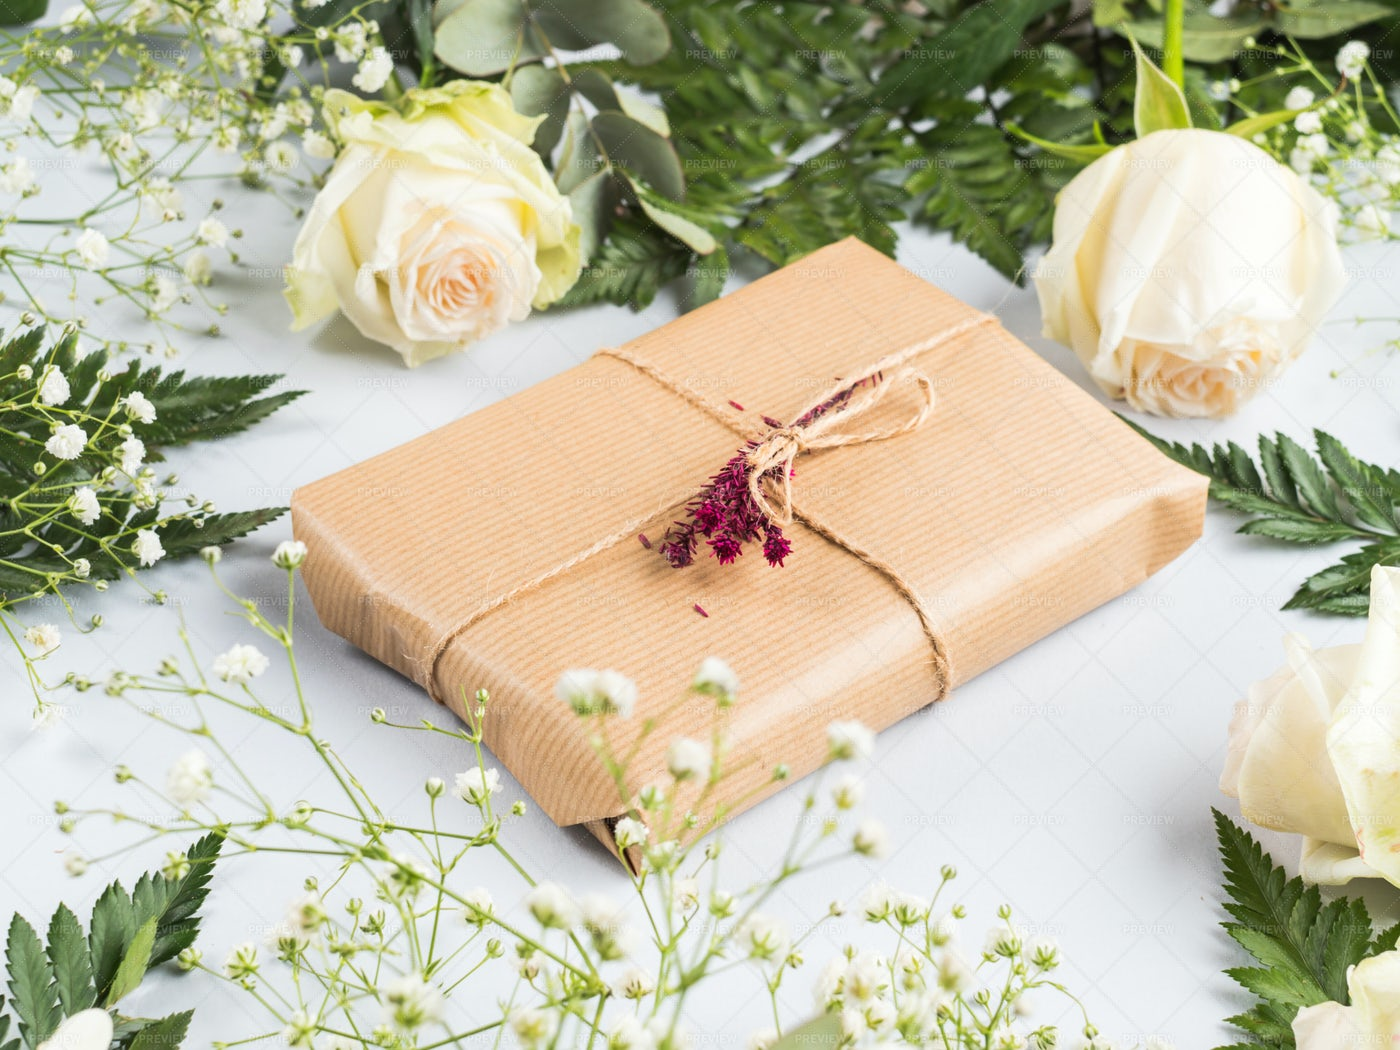 Gift Box With Dried Flowers: Stock Photos